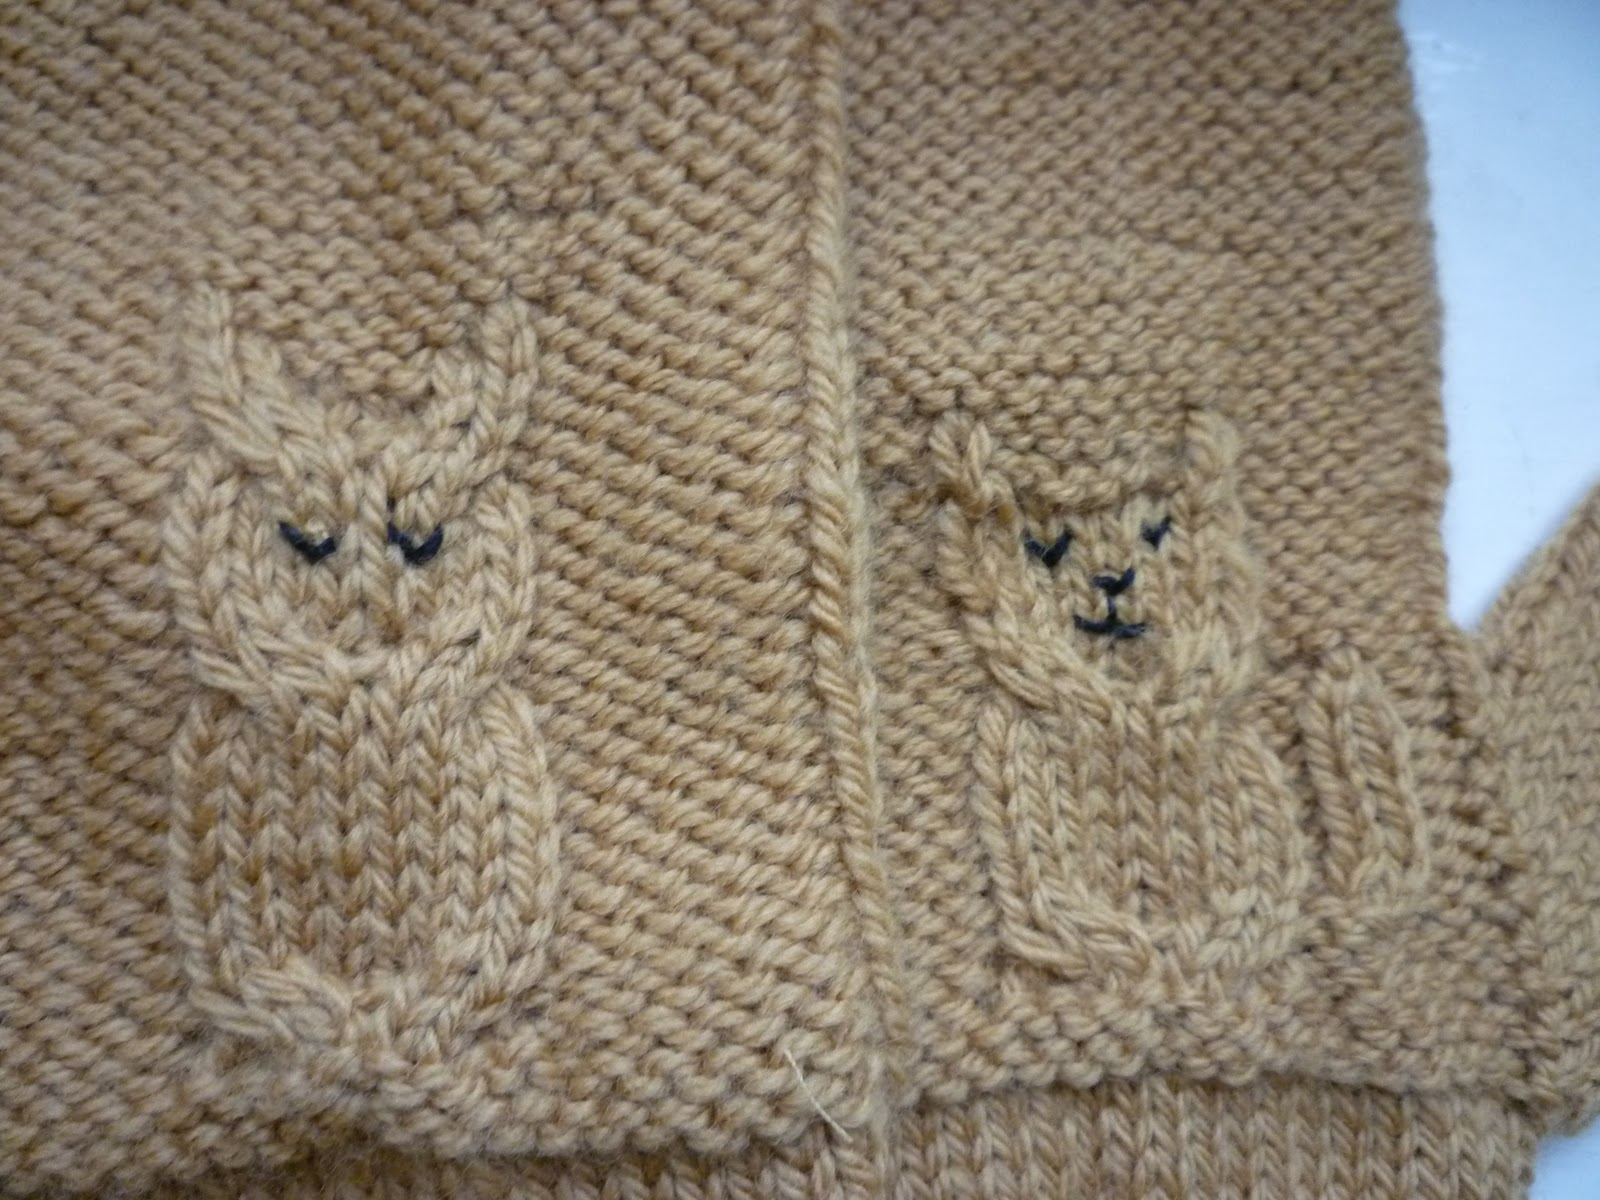 Knitting Pattern For Owl Jumper : Kestrel Makes: The Owl & The Pussycat Wore Some Mittens